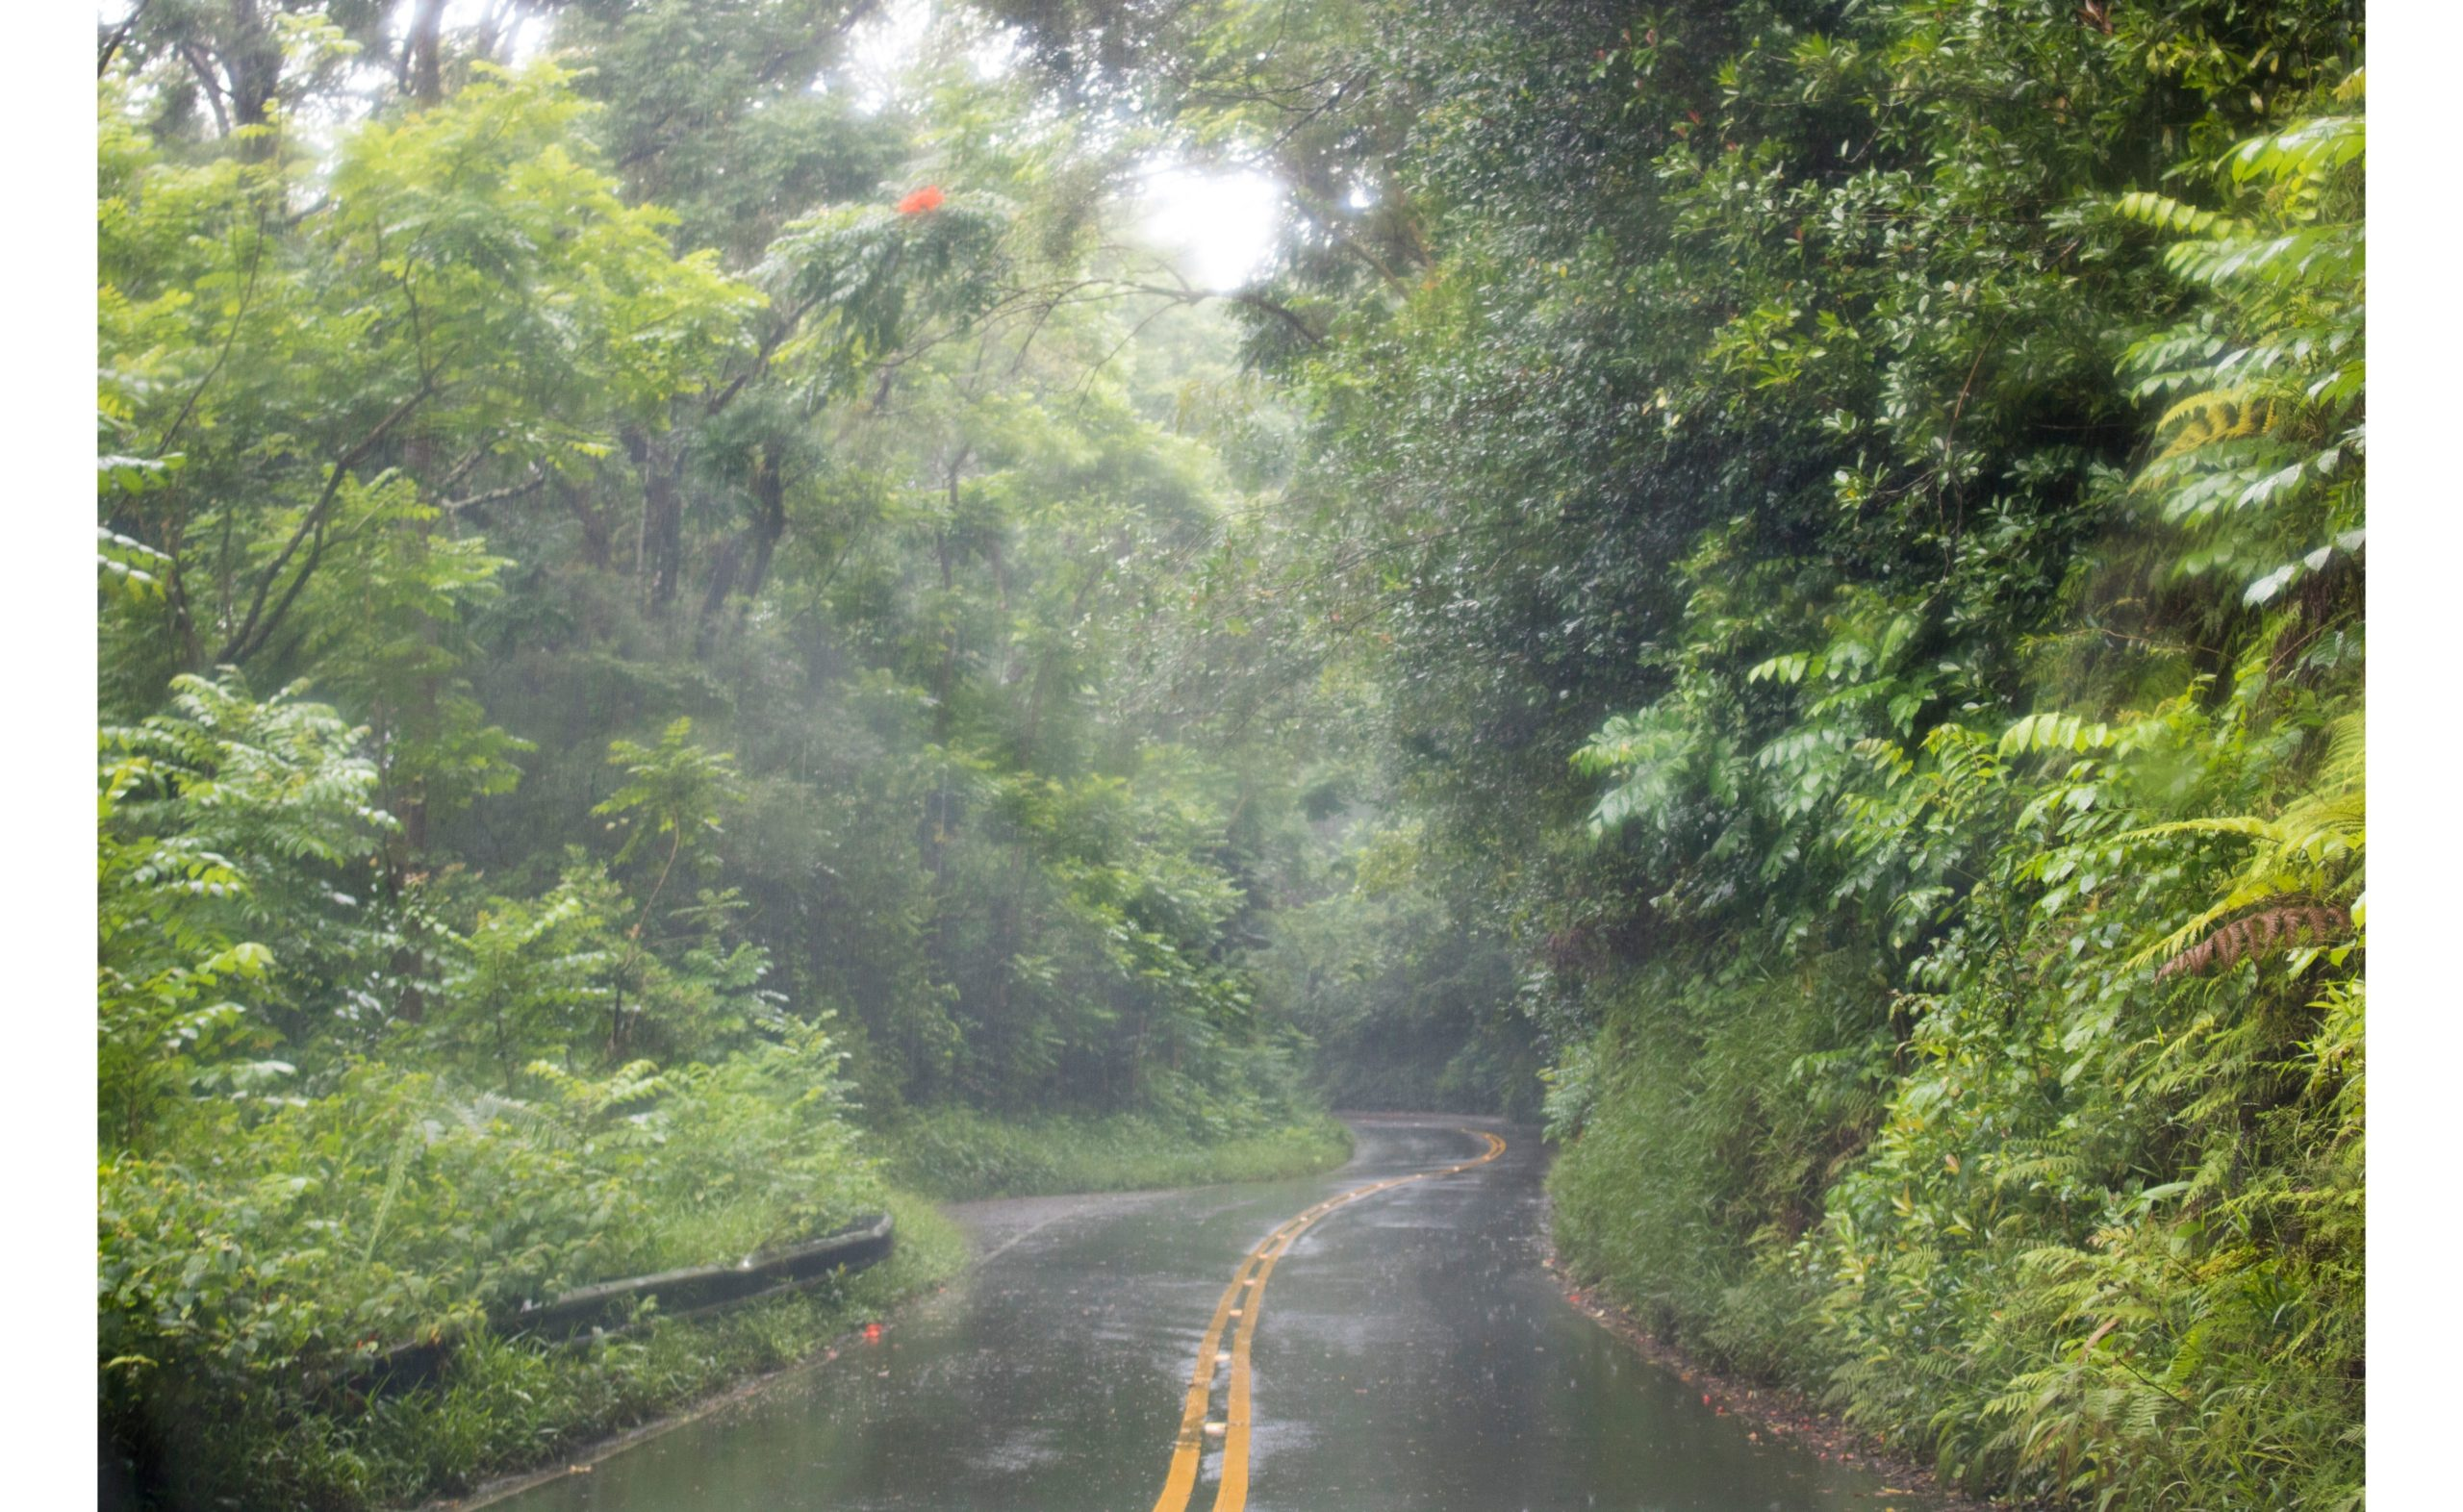 Weather in Hawaii can be rainy